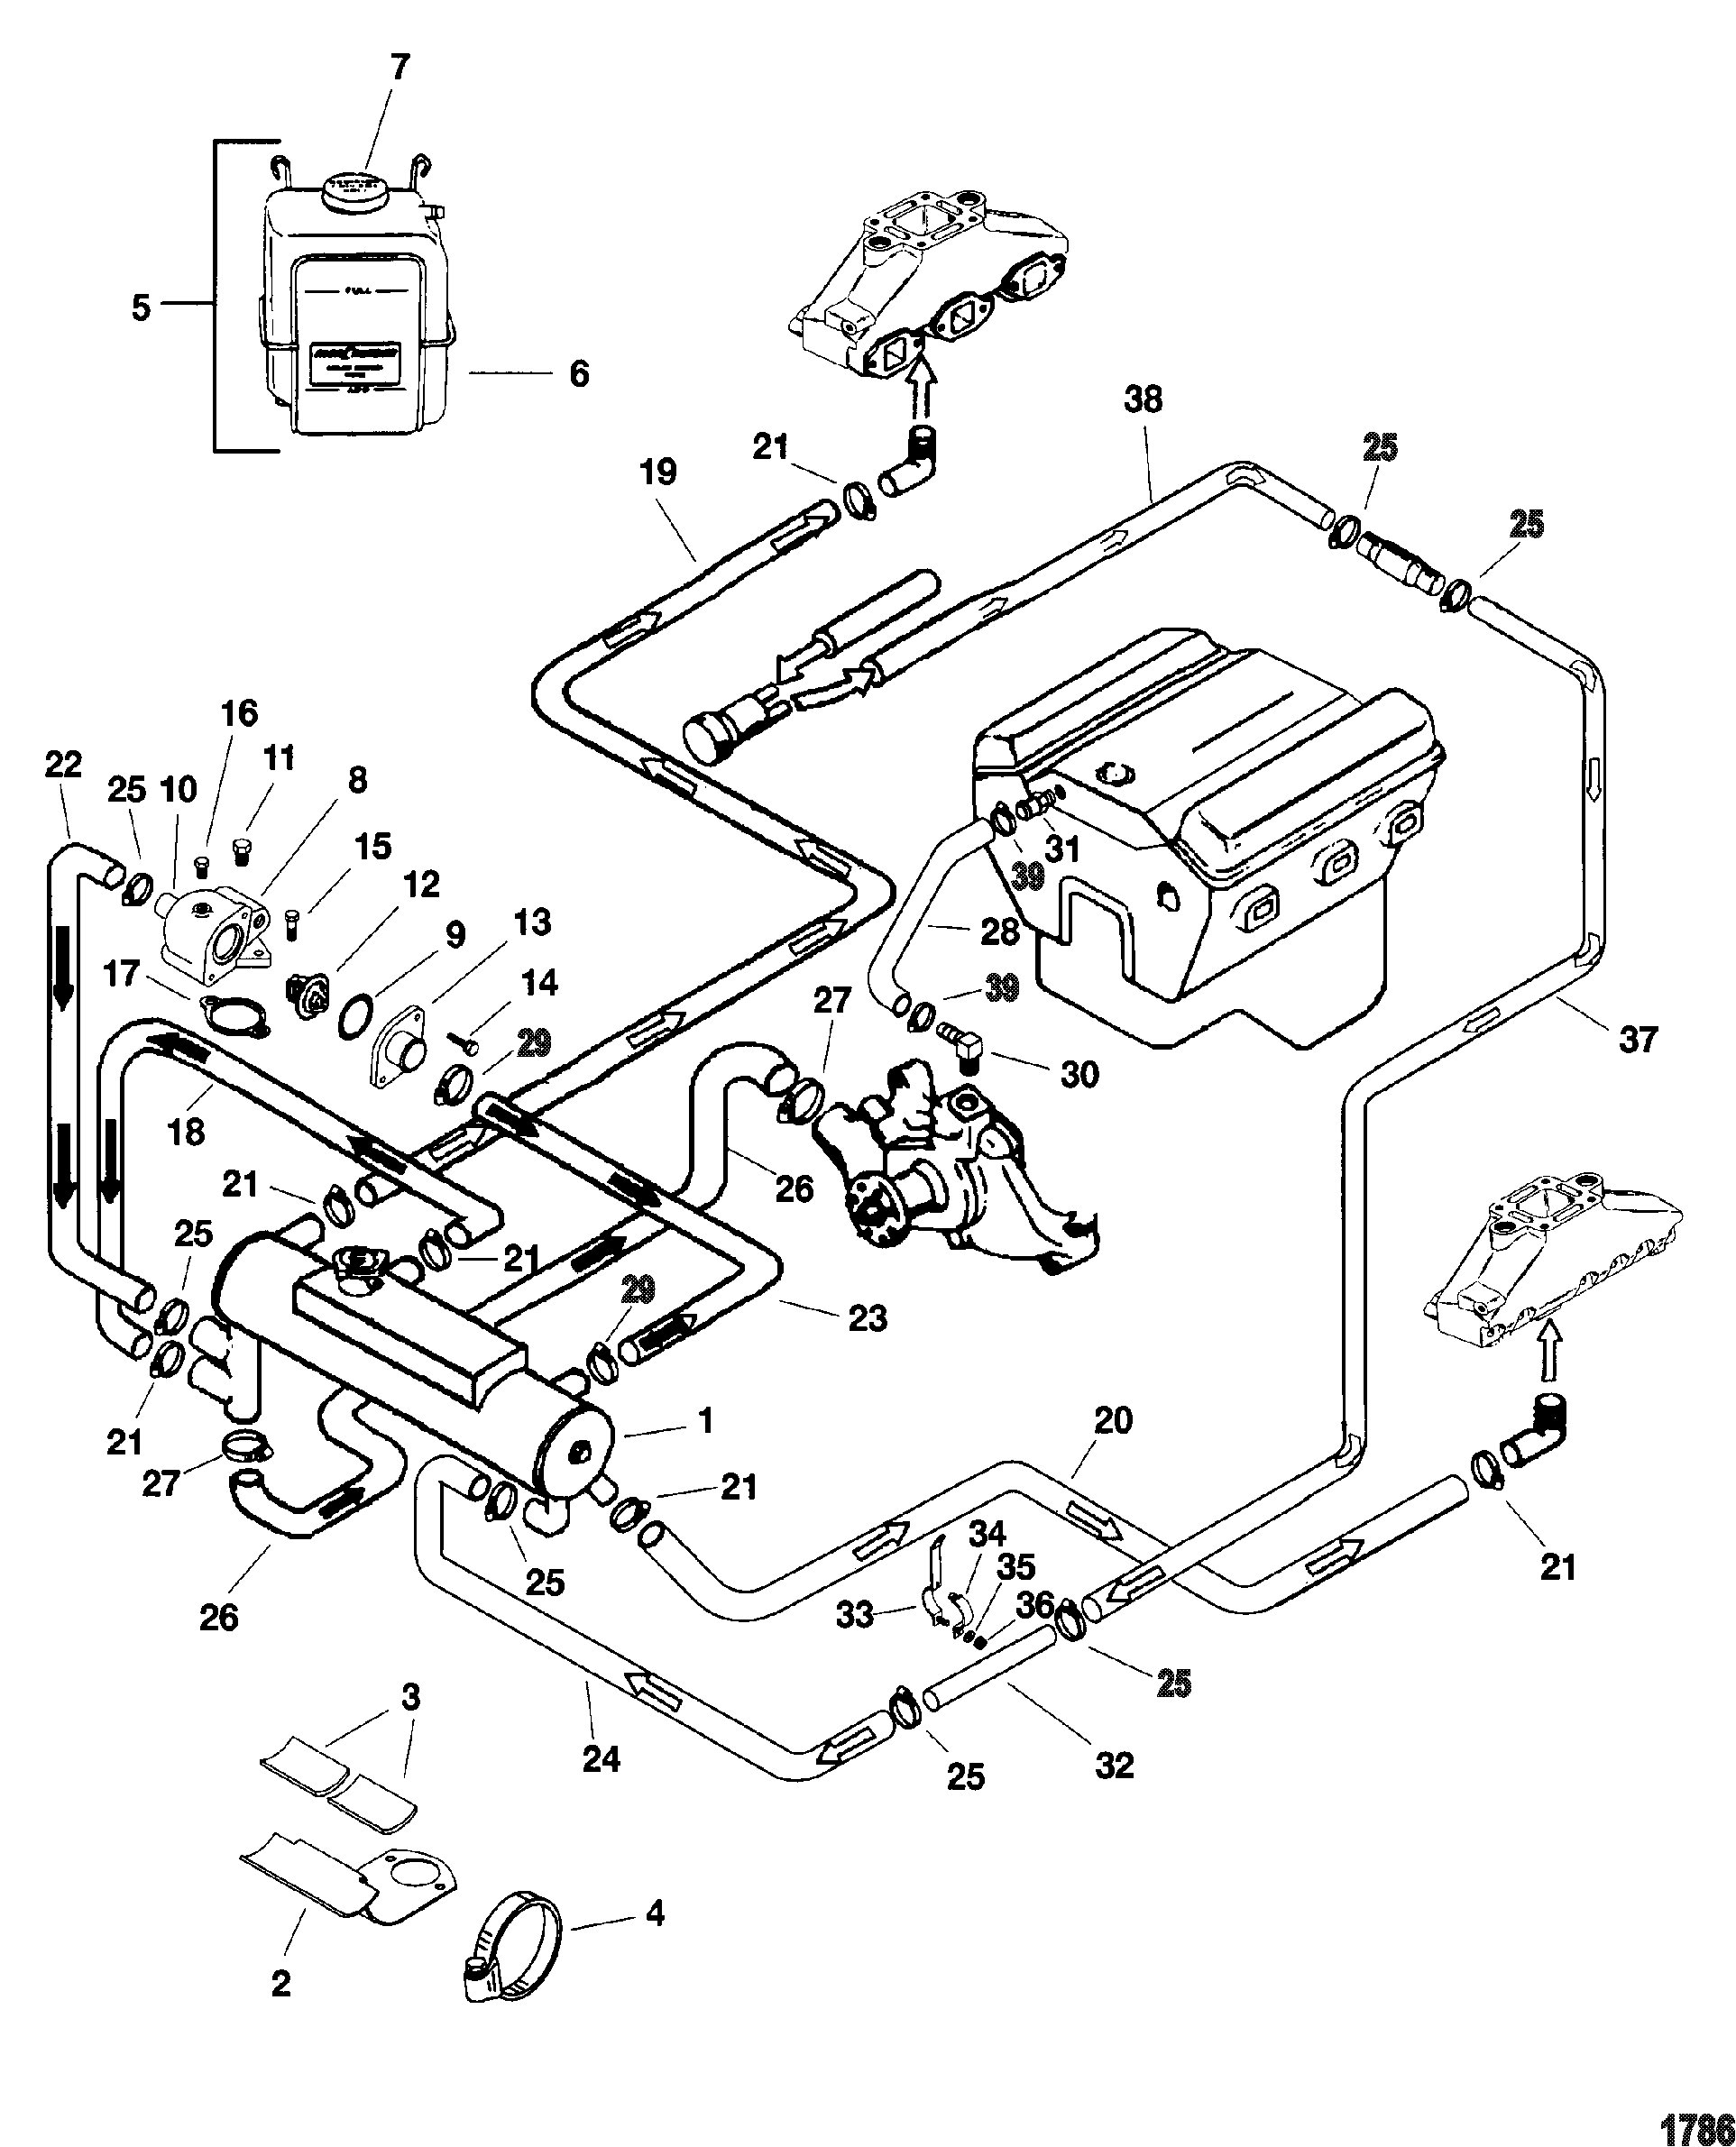 1999 Dodge Caravan Wiring Diagram 3 3l Engine Content Resource Of 1998 Opinions About U2022 Rh Voterid Co Motor For 0 Replaceing Lifters